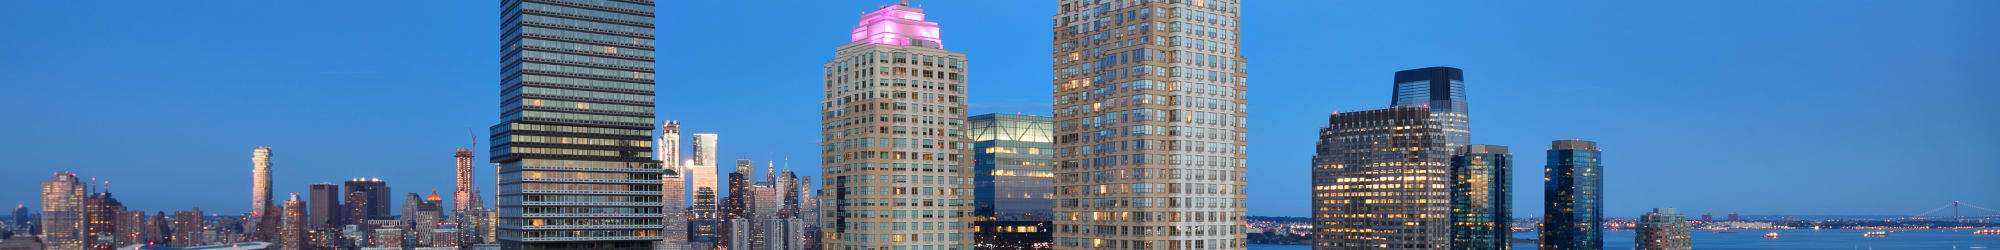 Contact us at Trump Bay Street in Jersey City, New Jersey